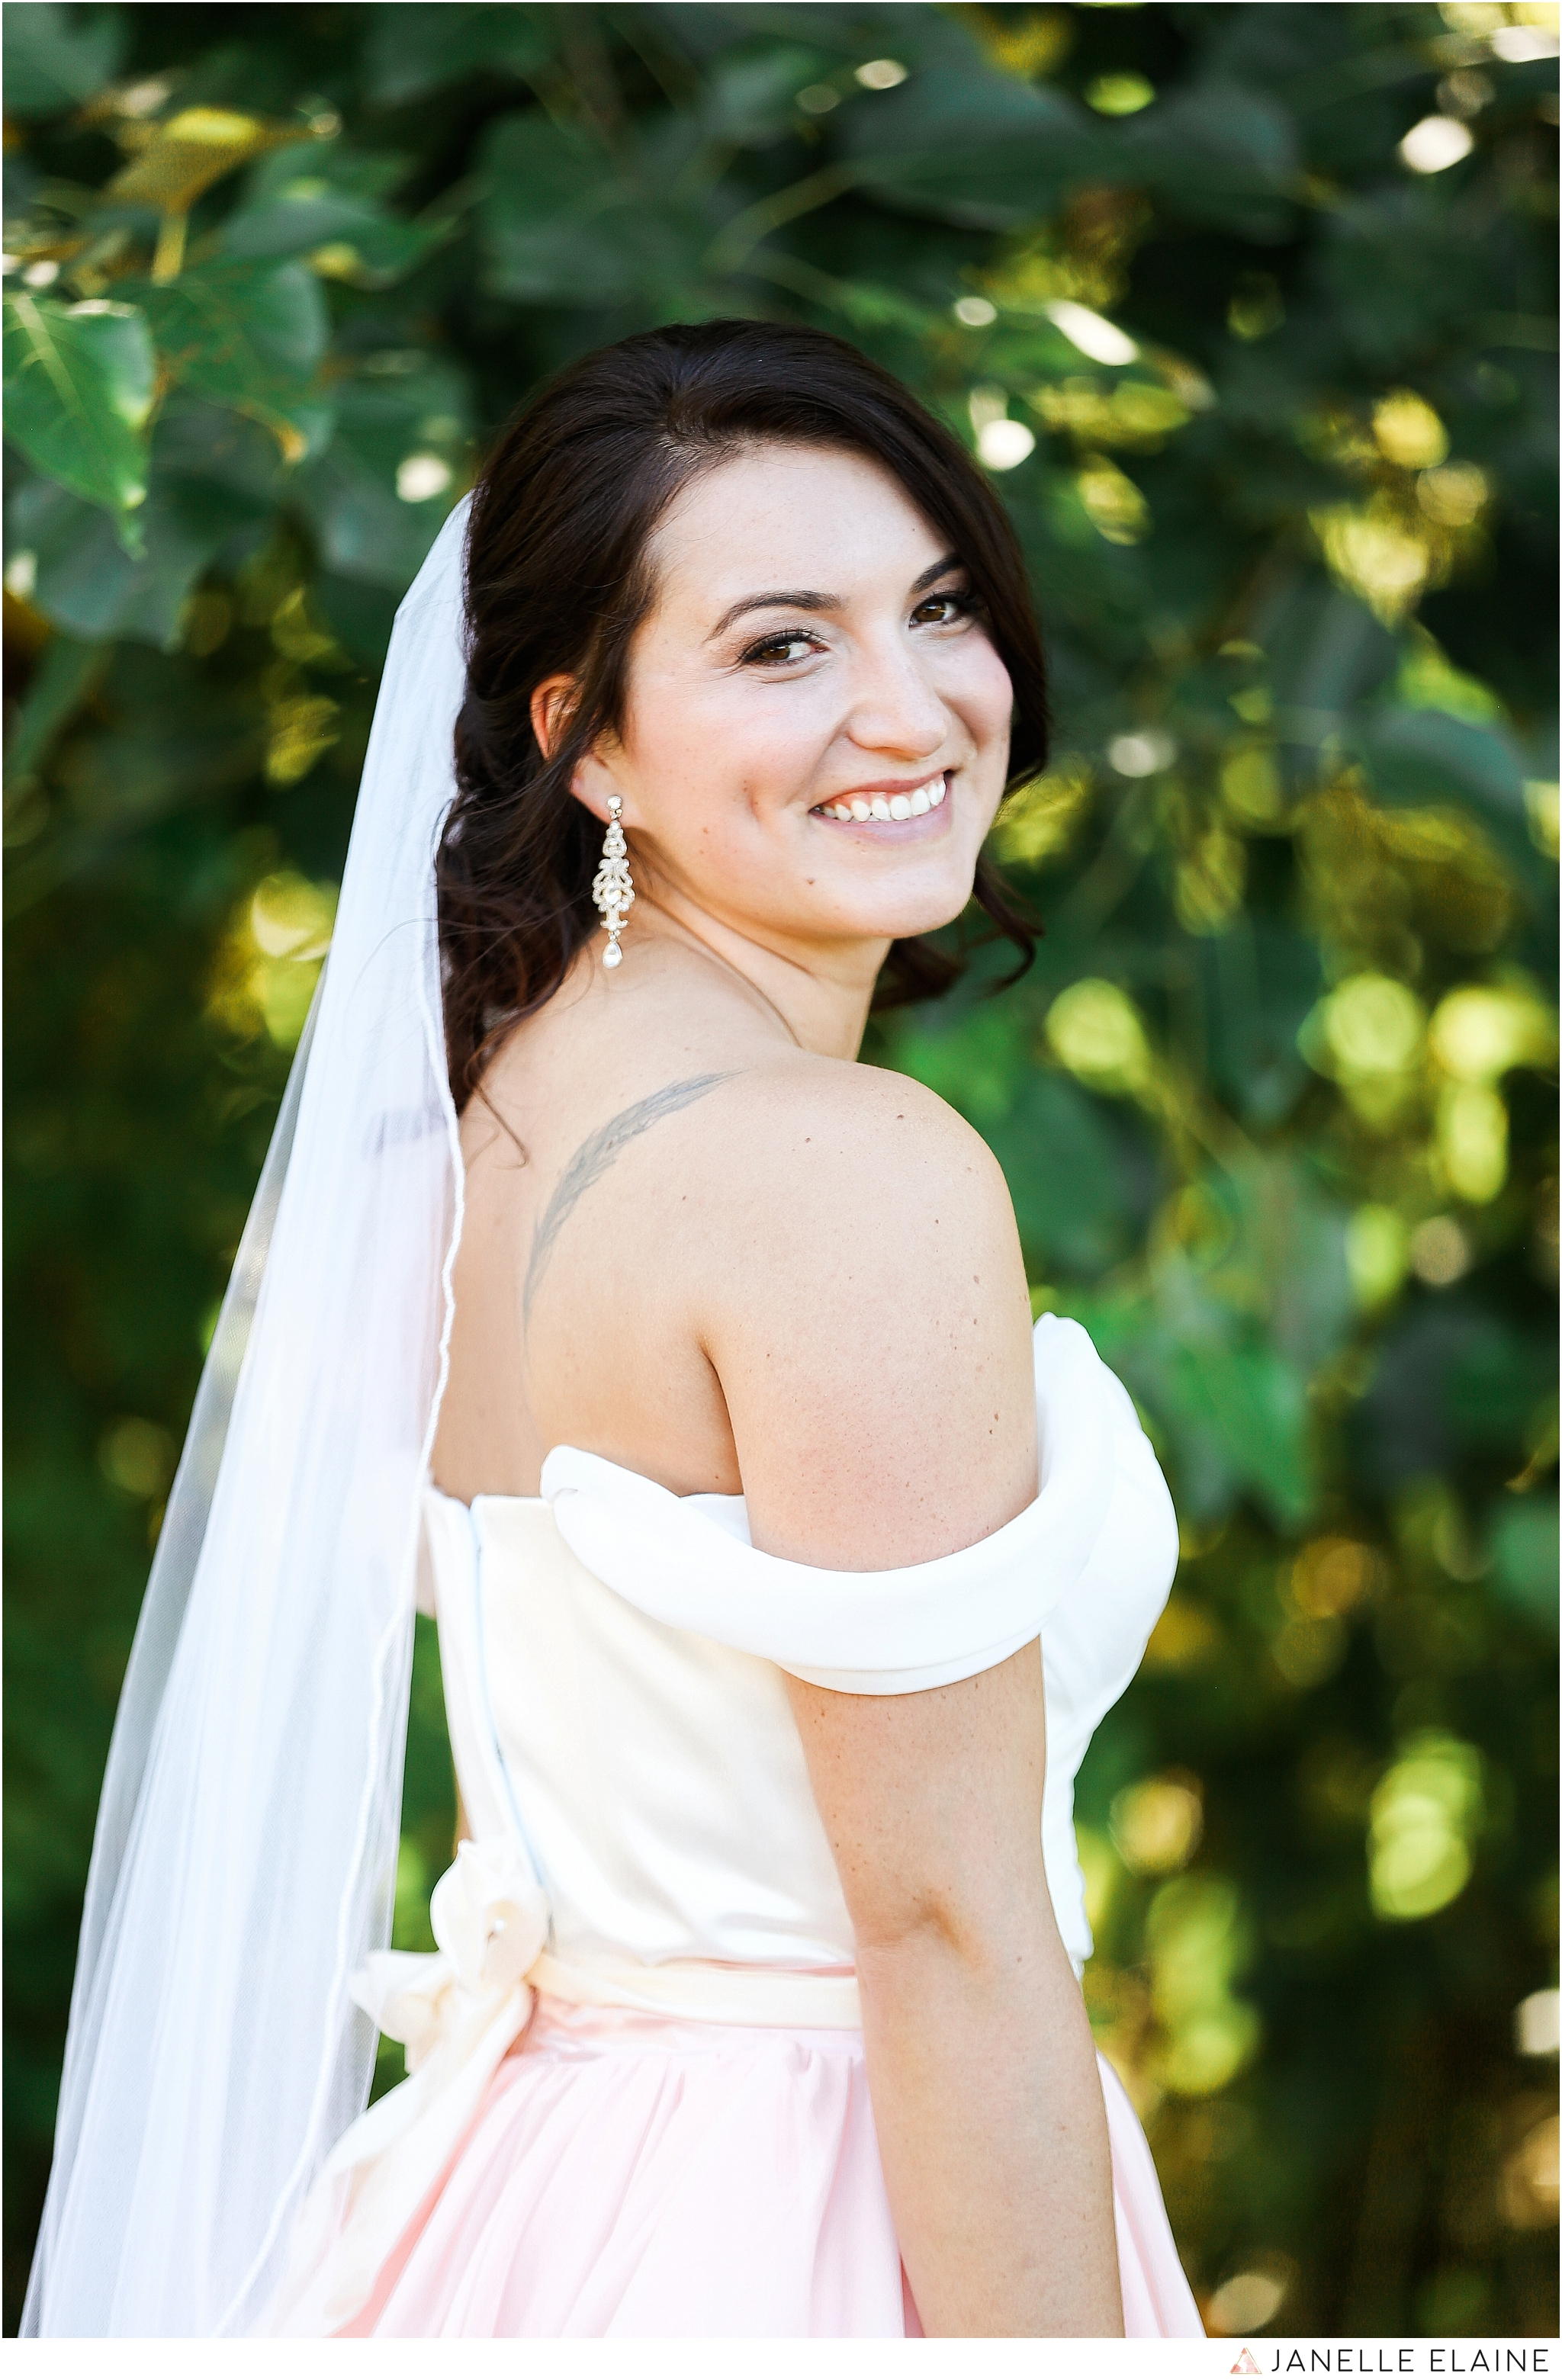 janelle elaine photography-jimmynicole-luther burbank park-seattle-wedding-144.jpg